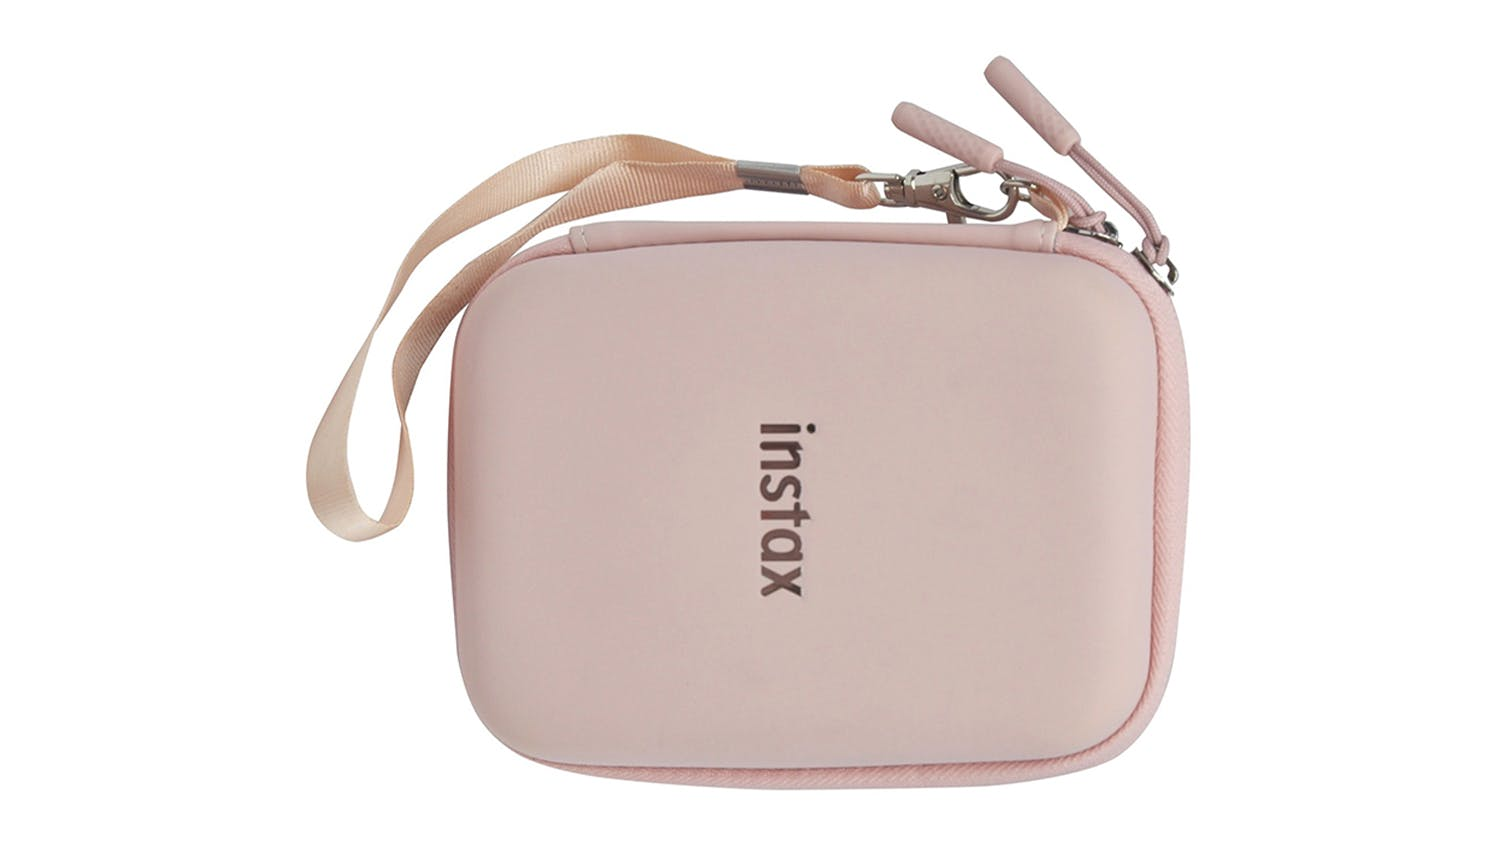 Instax mini Link - Dusty Pink Case